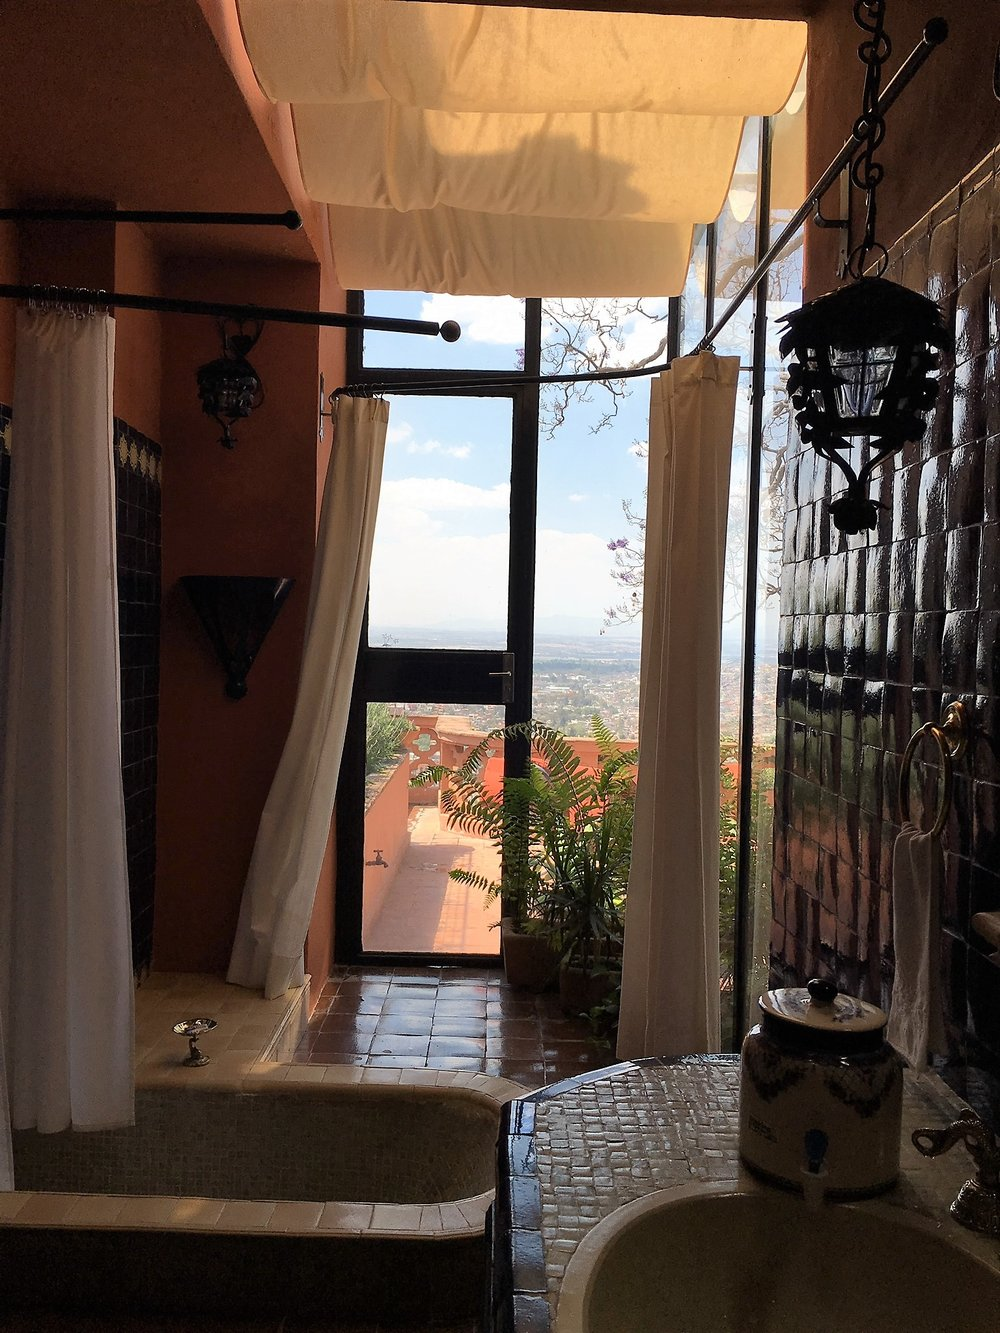 Can you believe this fabulous bathroom in our San Miguel de Allende apartment? Sunken tub with a view!